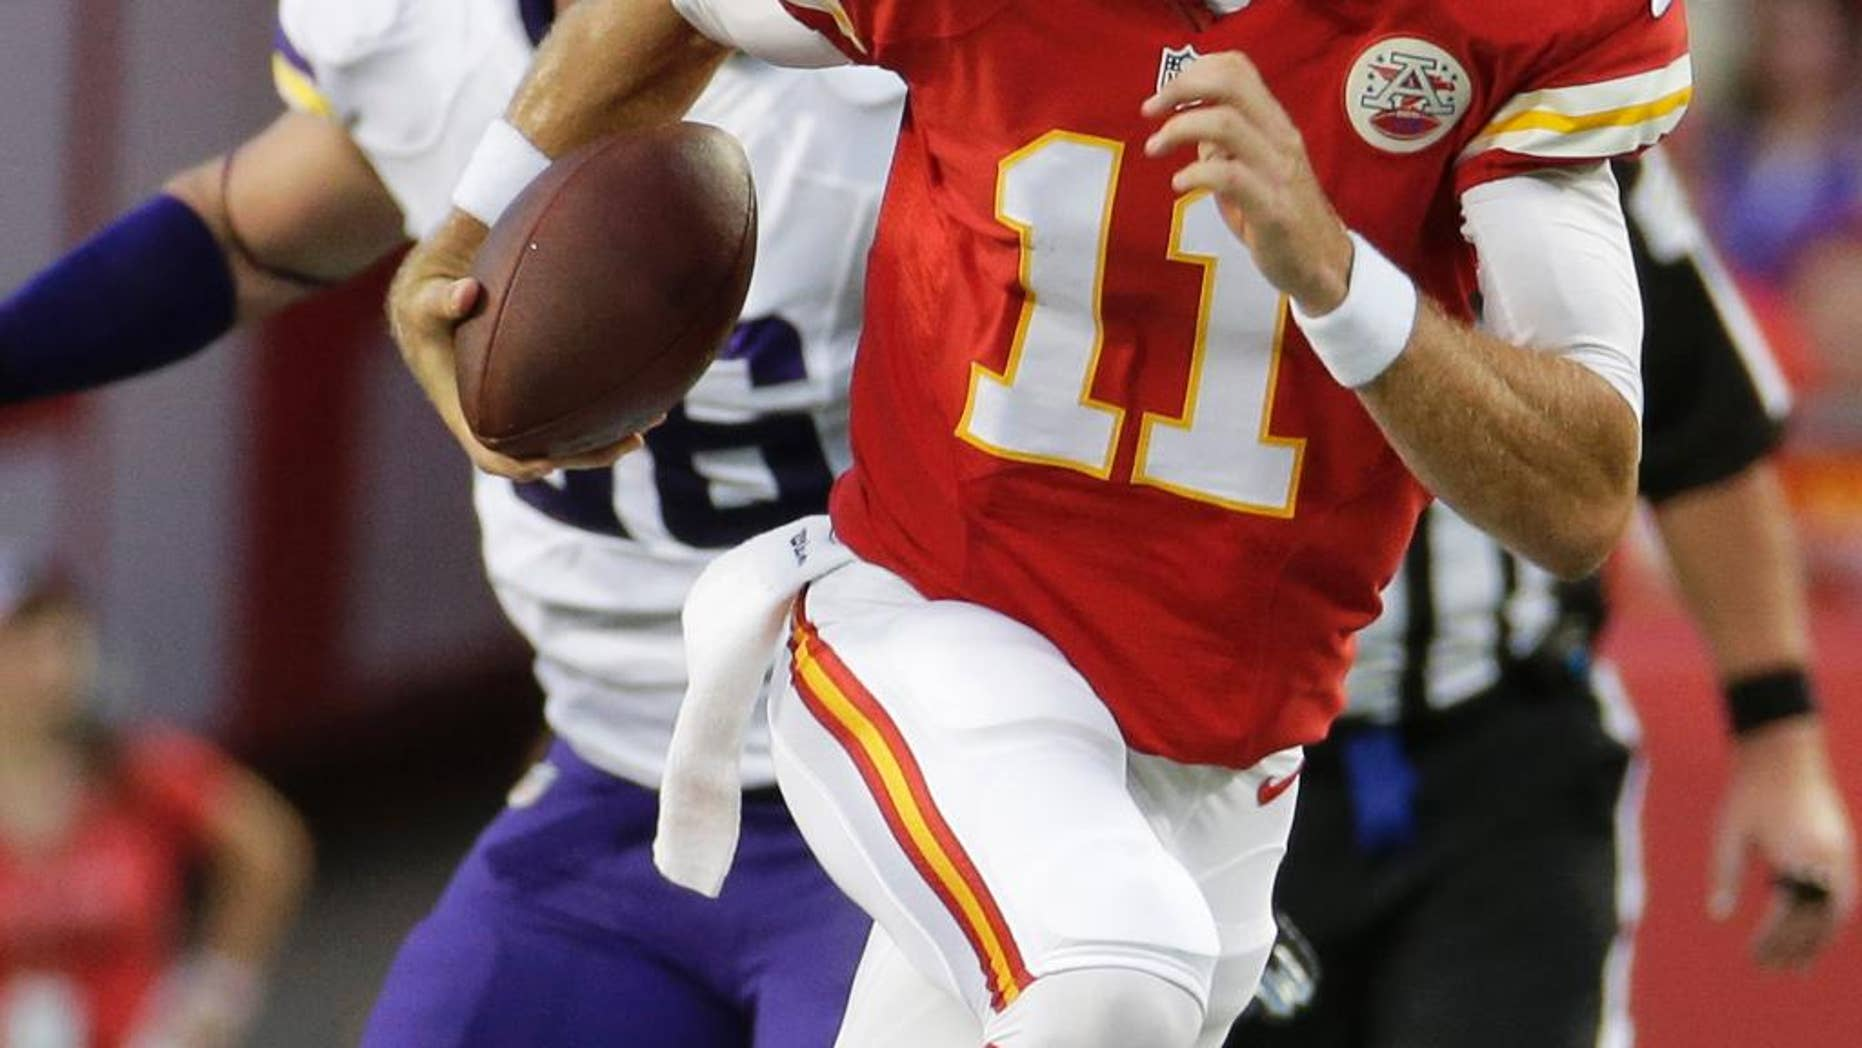 Kansas City Chiefs quarterback Alex Smith (11) runs past Minnesota Vikings defensive end Brian Robison during the first half of an NFL preseason football game in Kansas City, Mo., Saturday, Aug. 23, 2014. (AP Photo/Charlie Riedel)